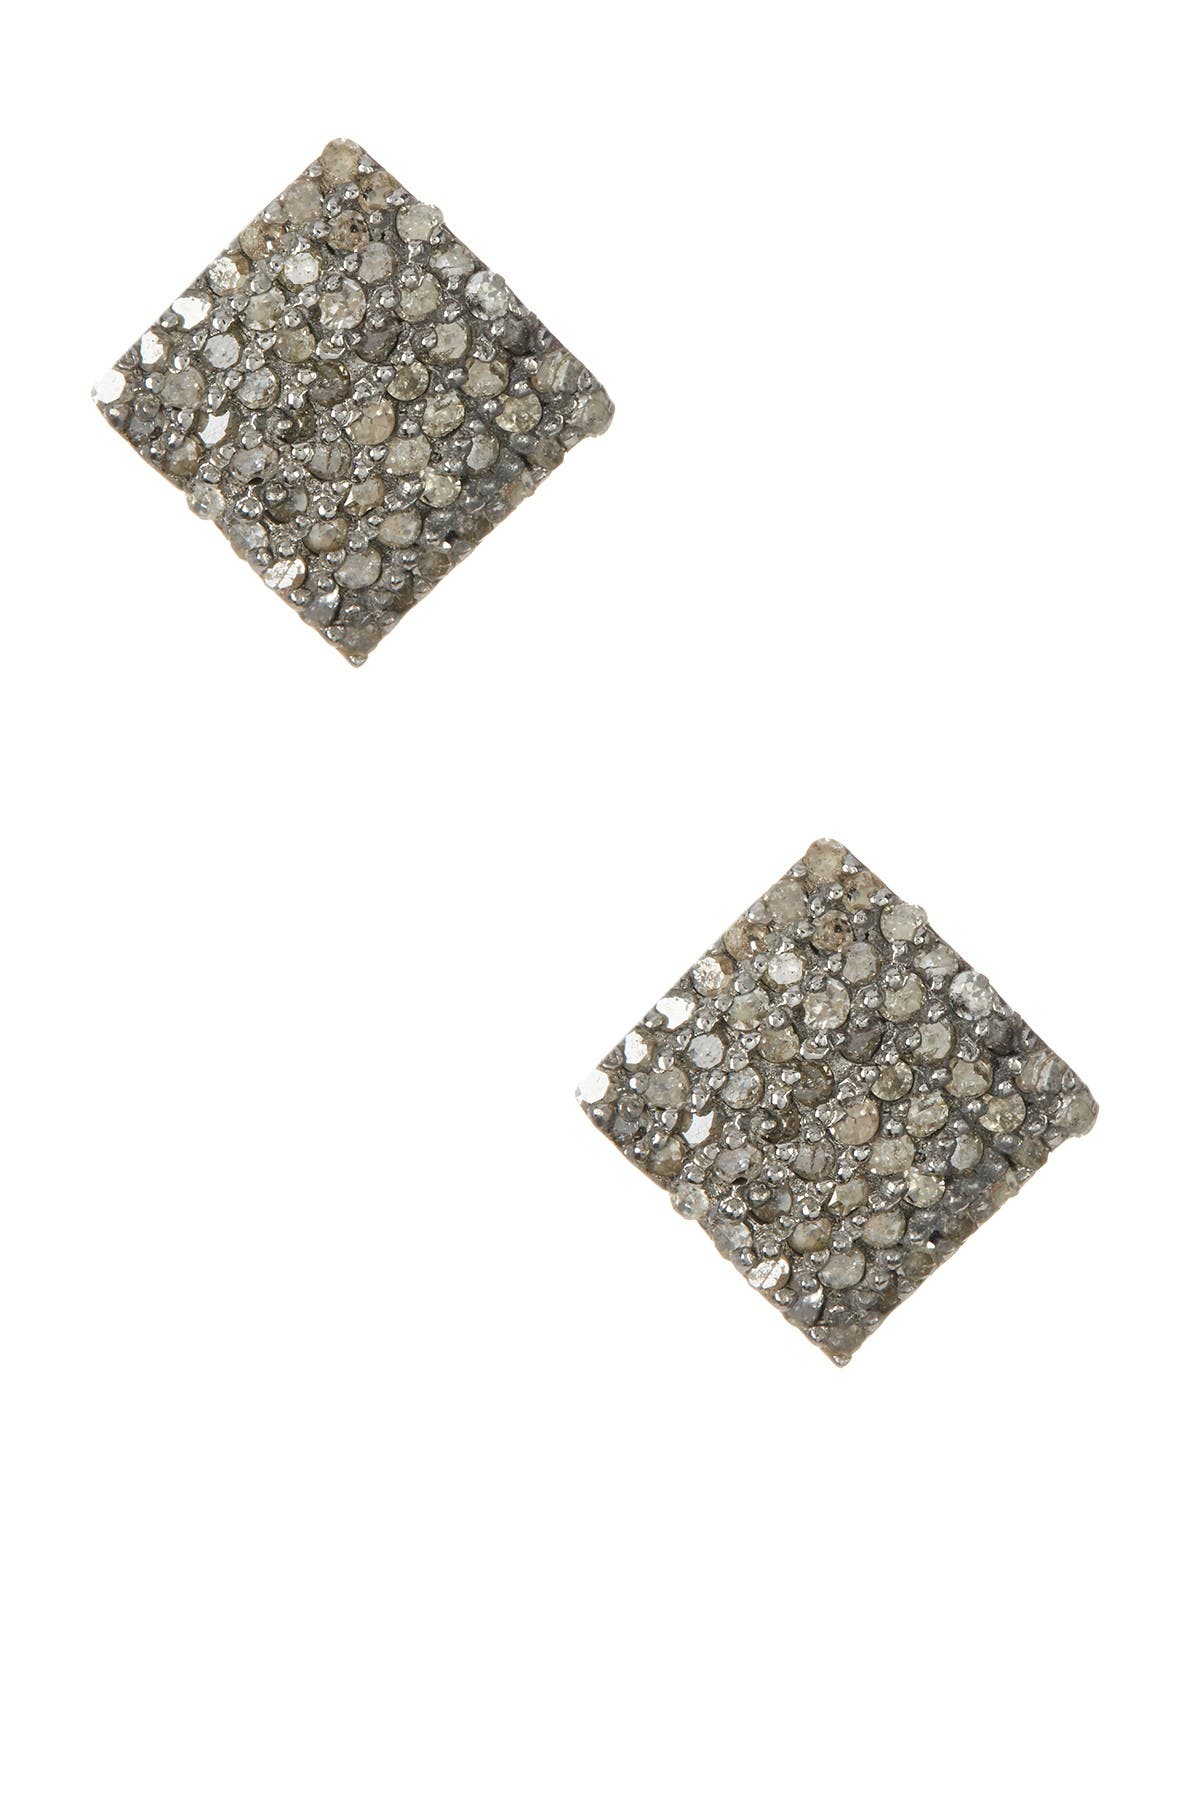 Image of ADORNIA Ethel Champagne Diamond Stud Earrings - 0.90 ctw